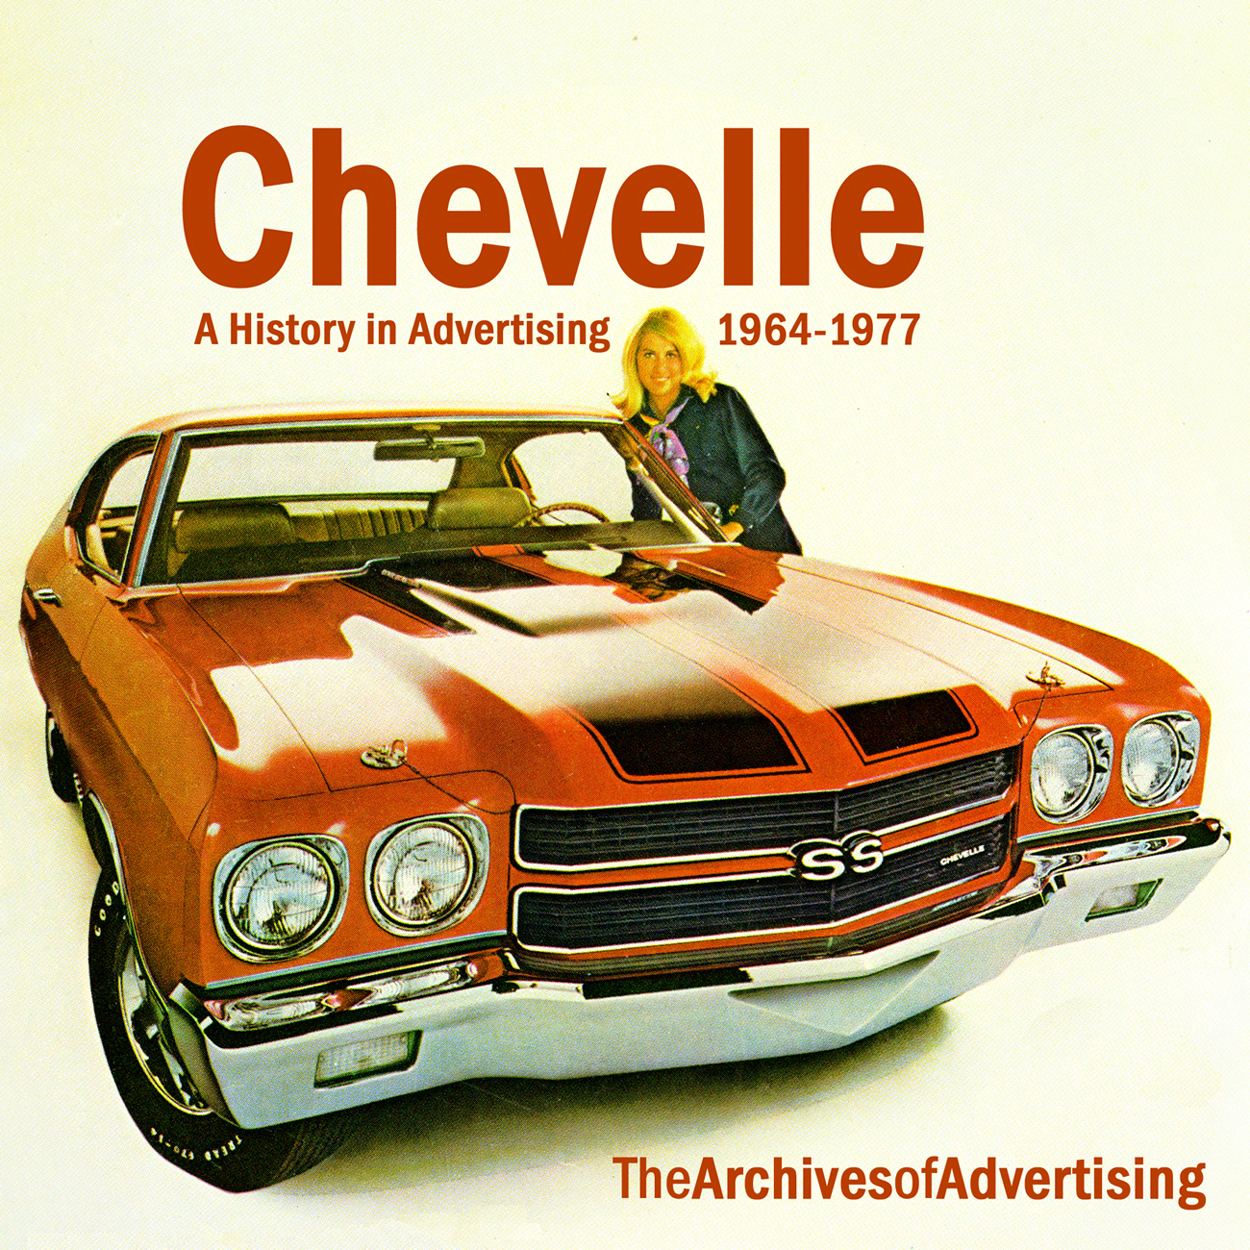 1964 1965 1966 1967 1968 1969 1970 1971 1972 1973-1977 Chevelle ad CD: 195 ads!